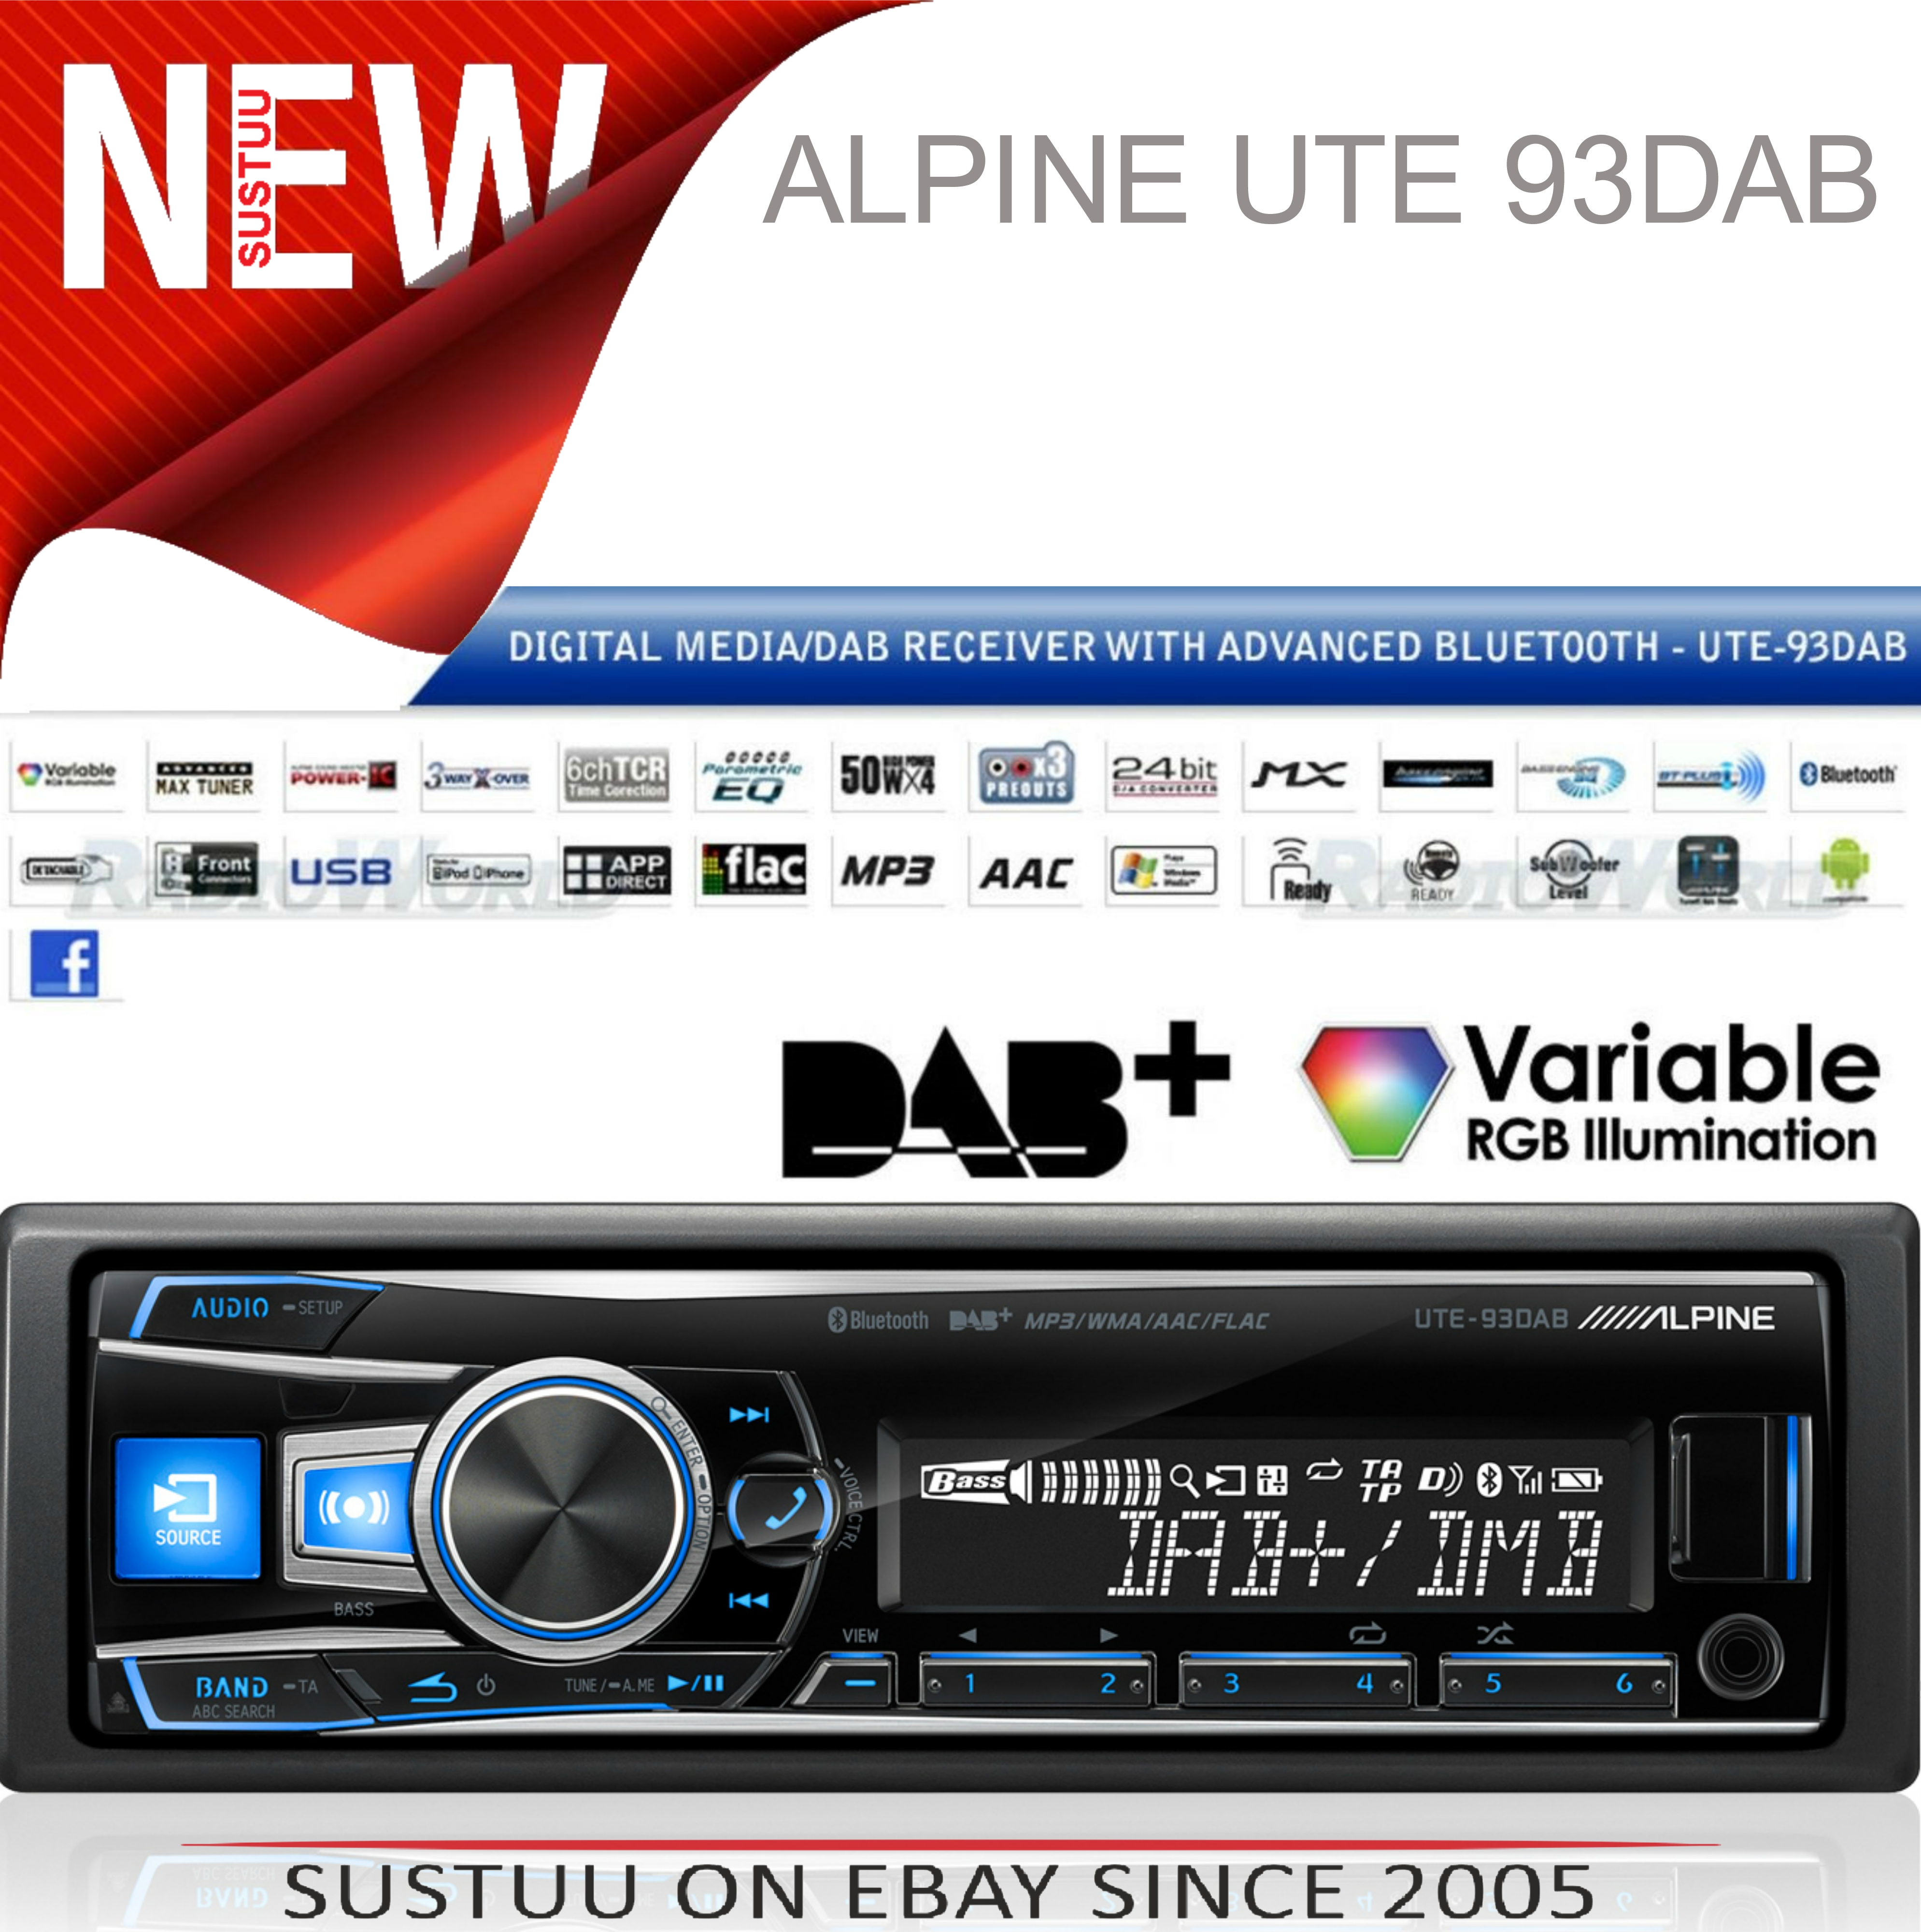 Alpine UTE 93DAB Digital Car Media Receiver Mechless Usb DAB+Bluetooth Front Aux